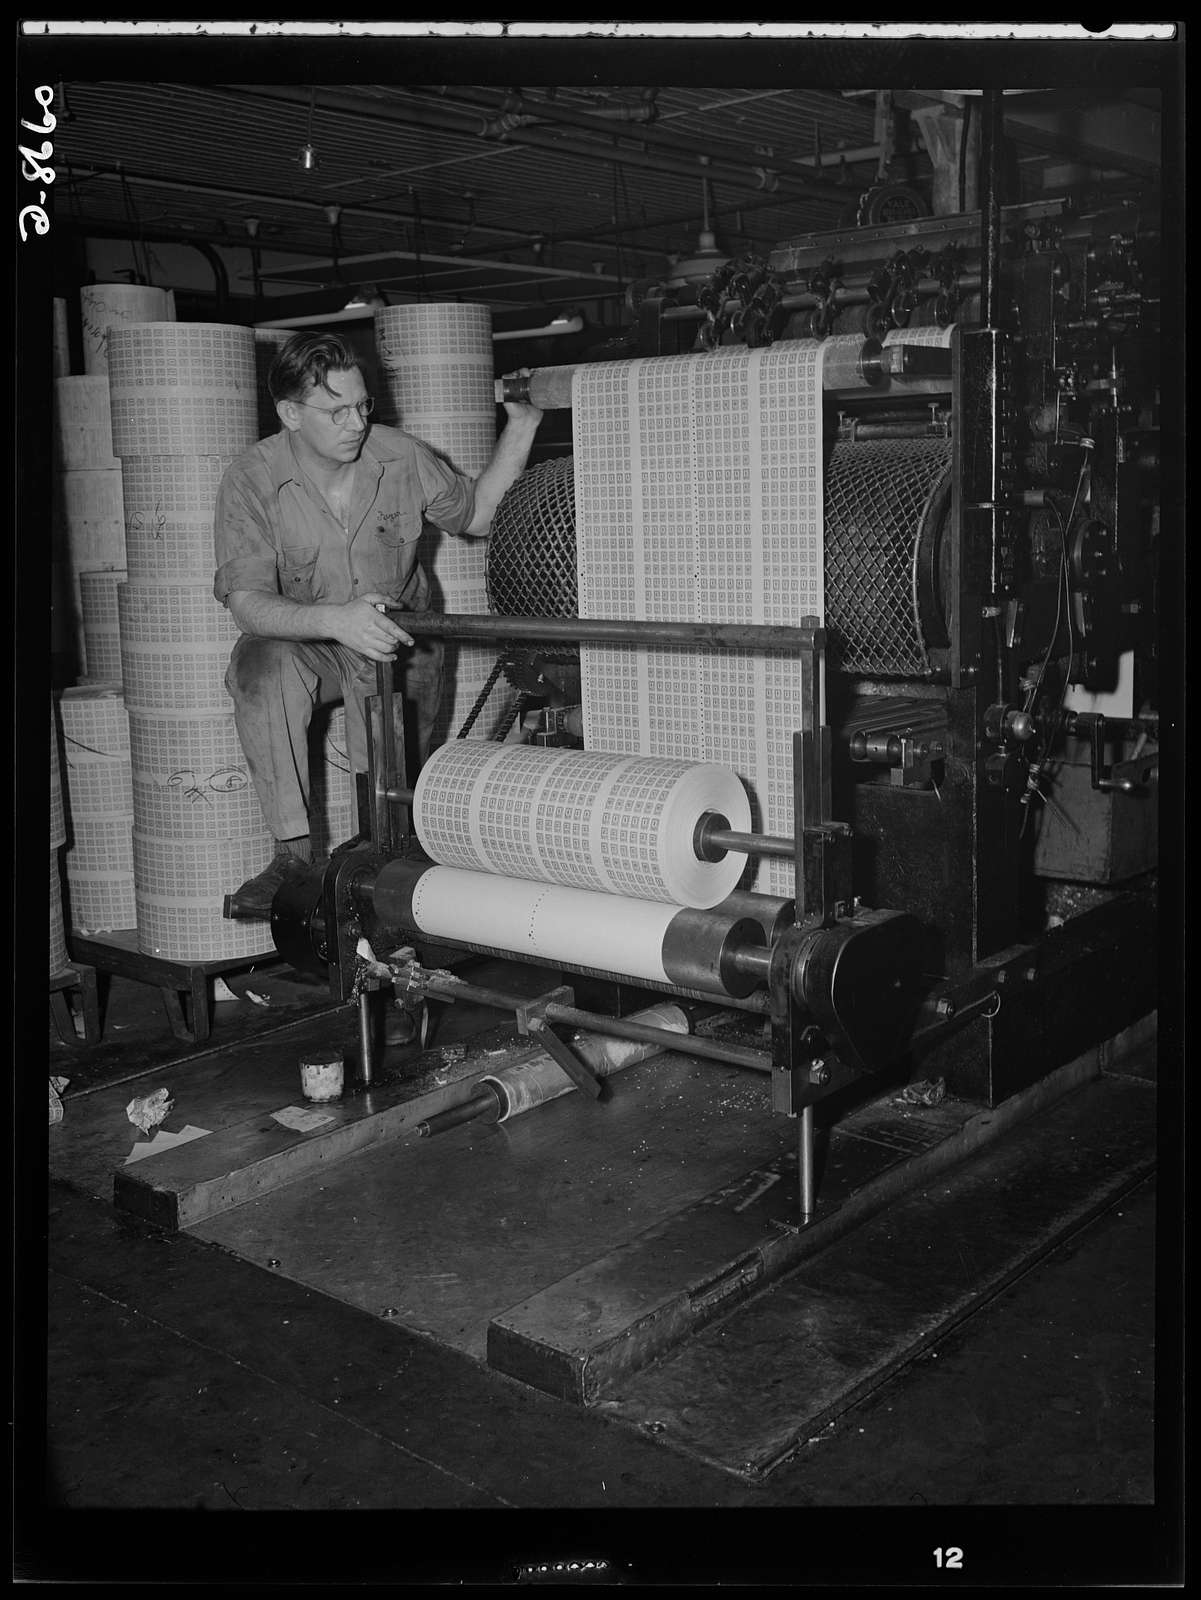 Printing war ration book 2. Printing coupons for war ration book 2. Pressman Adolph Beyer watches as the coupons roll from the press in a steady stream at a printing establishment in Hoboken, New Jersey